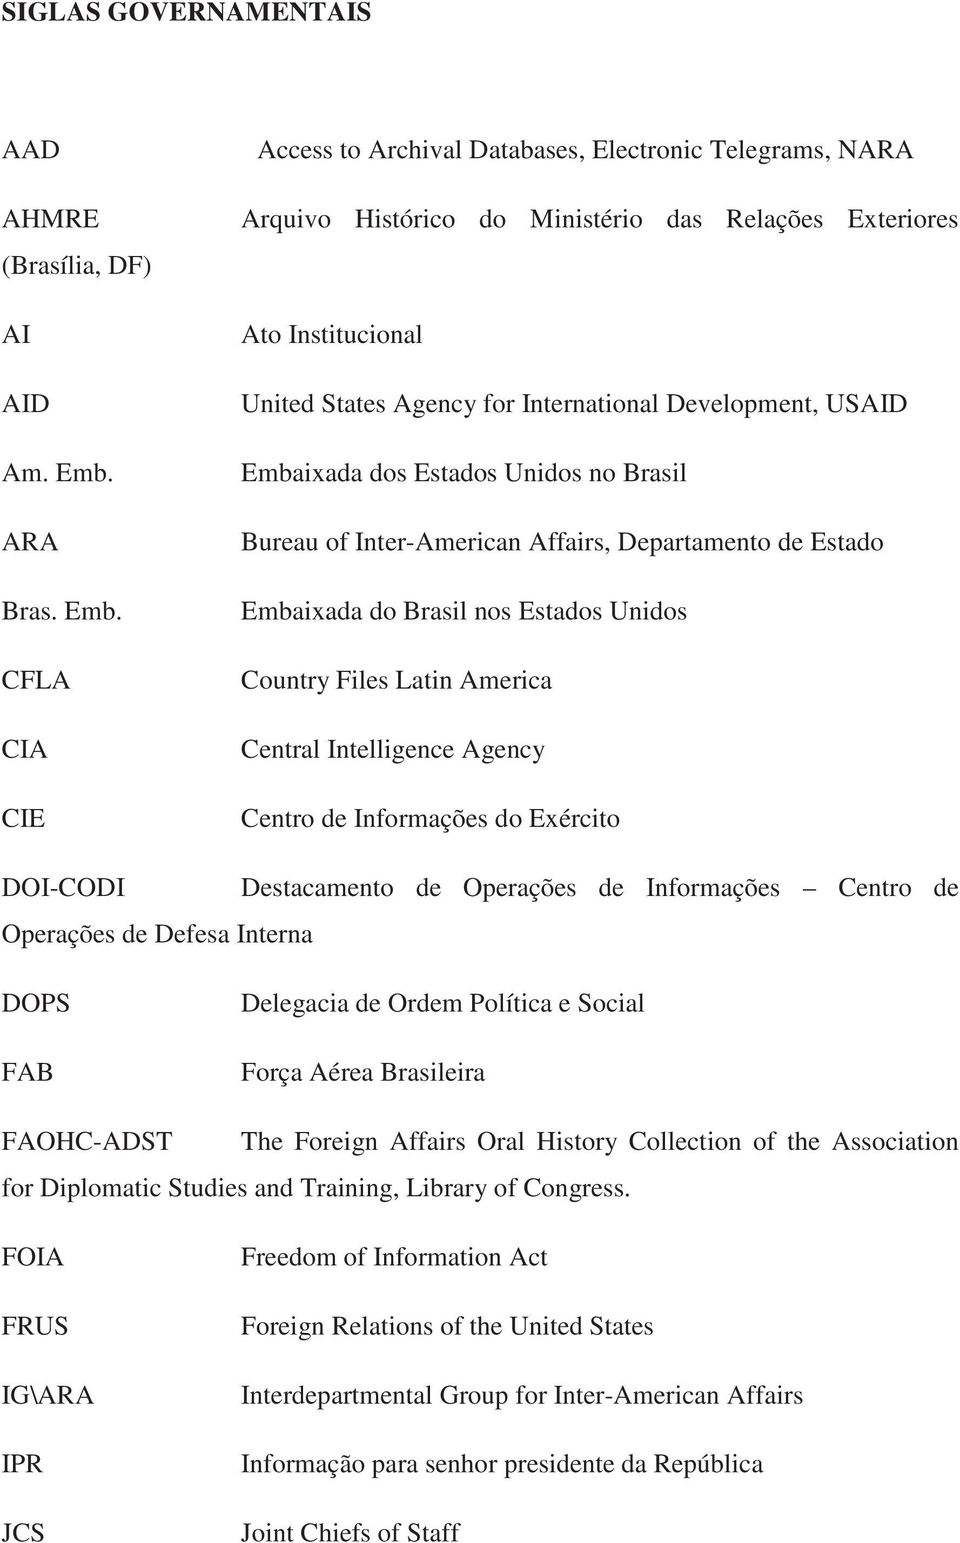 CFLA CIA CIE Access to Archival Databases, Electronic Telegrams, NARA Arquivo Histórico do Ministério das Relações Exteriores Ato Institucional United States Agency for International Development,